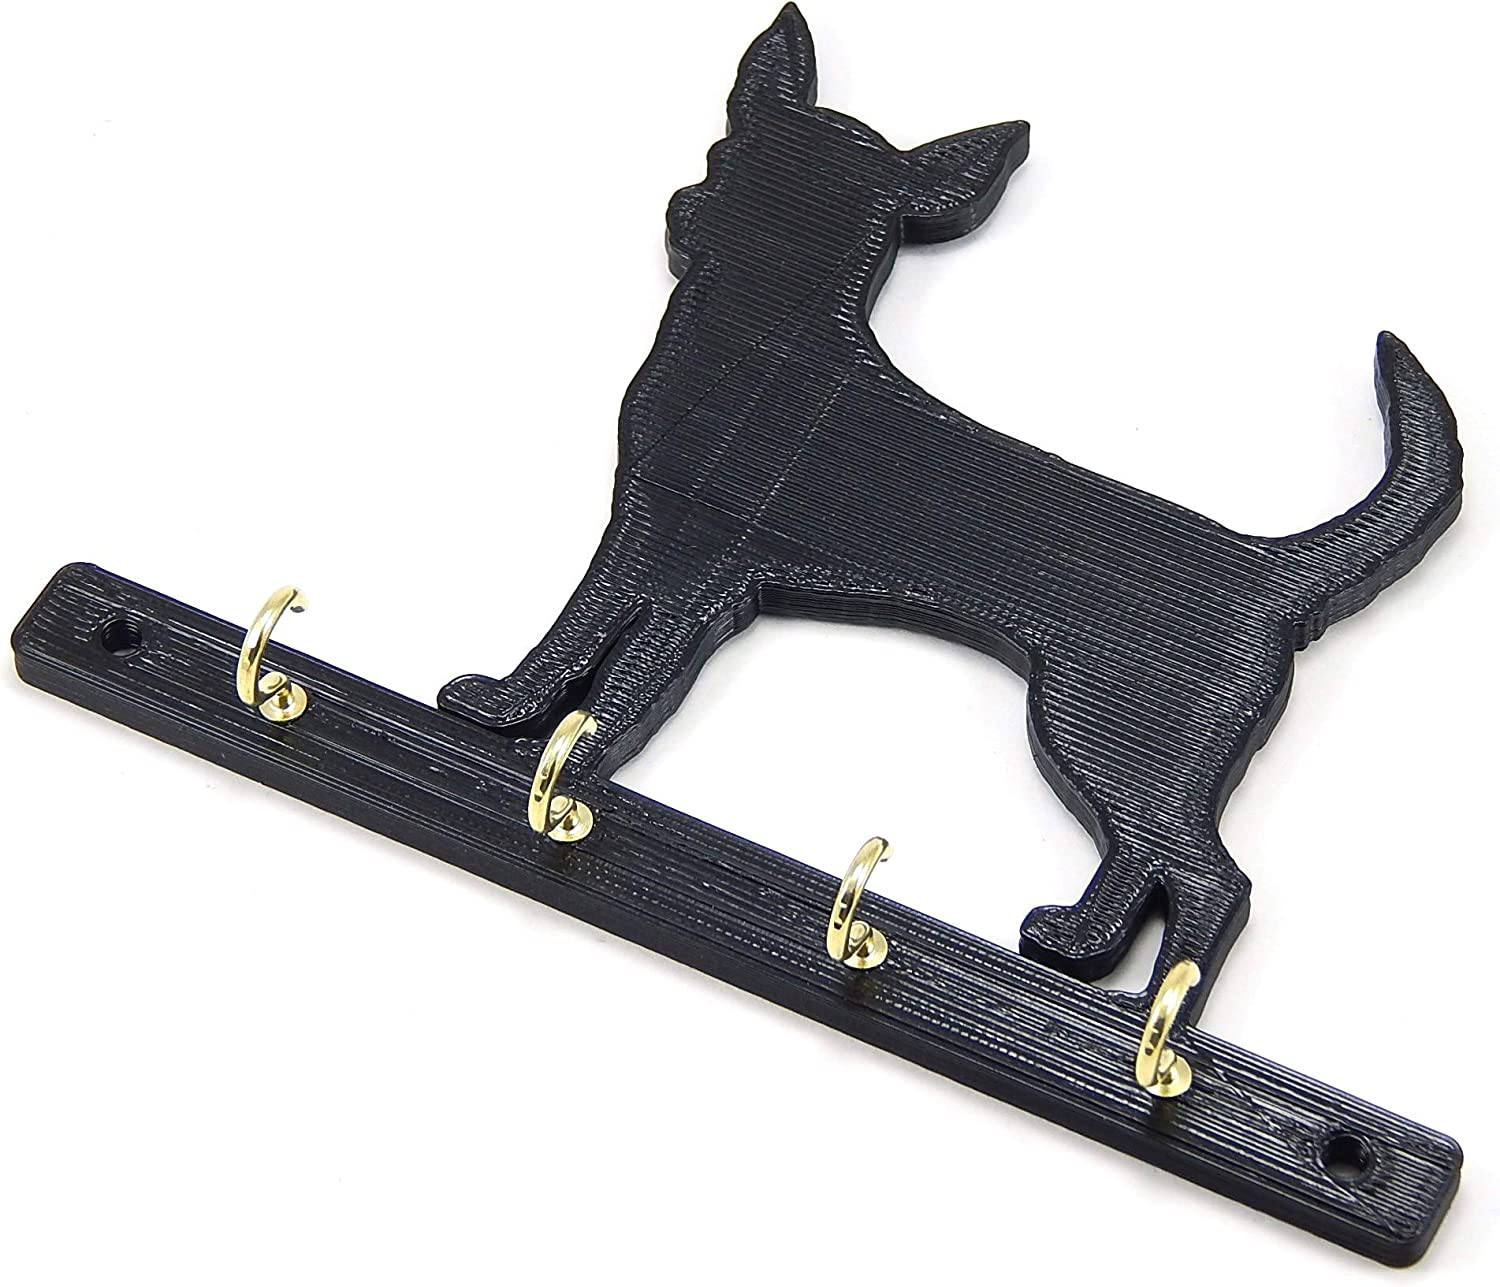 German Shepherd Dog Leash Holder Comes With Four Hooks Holds Four Leashes Dog Home Decor Forms Recordkeeping Money Handling Key Cabinets Racks Holders